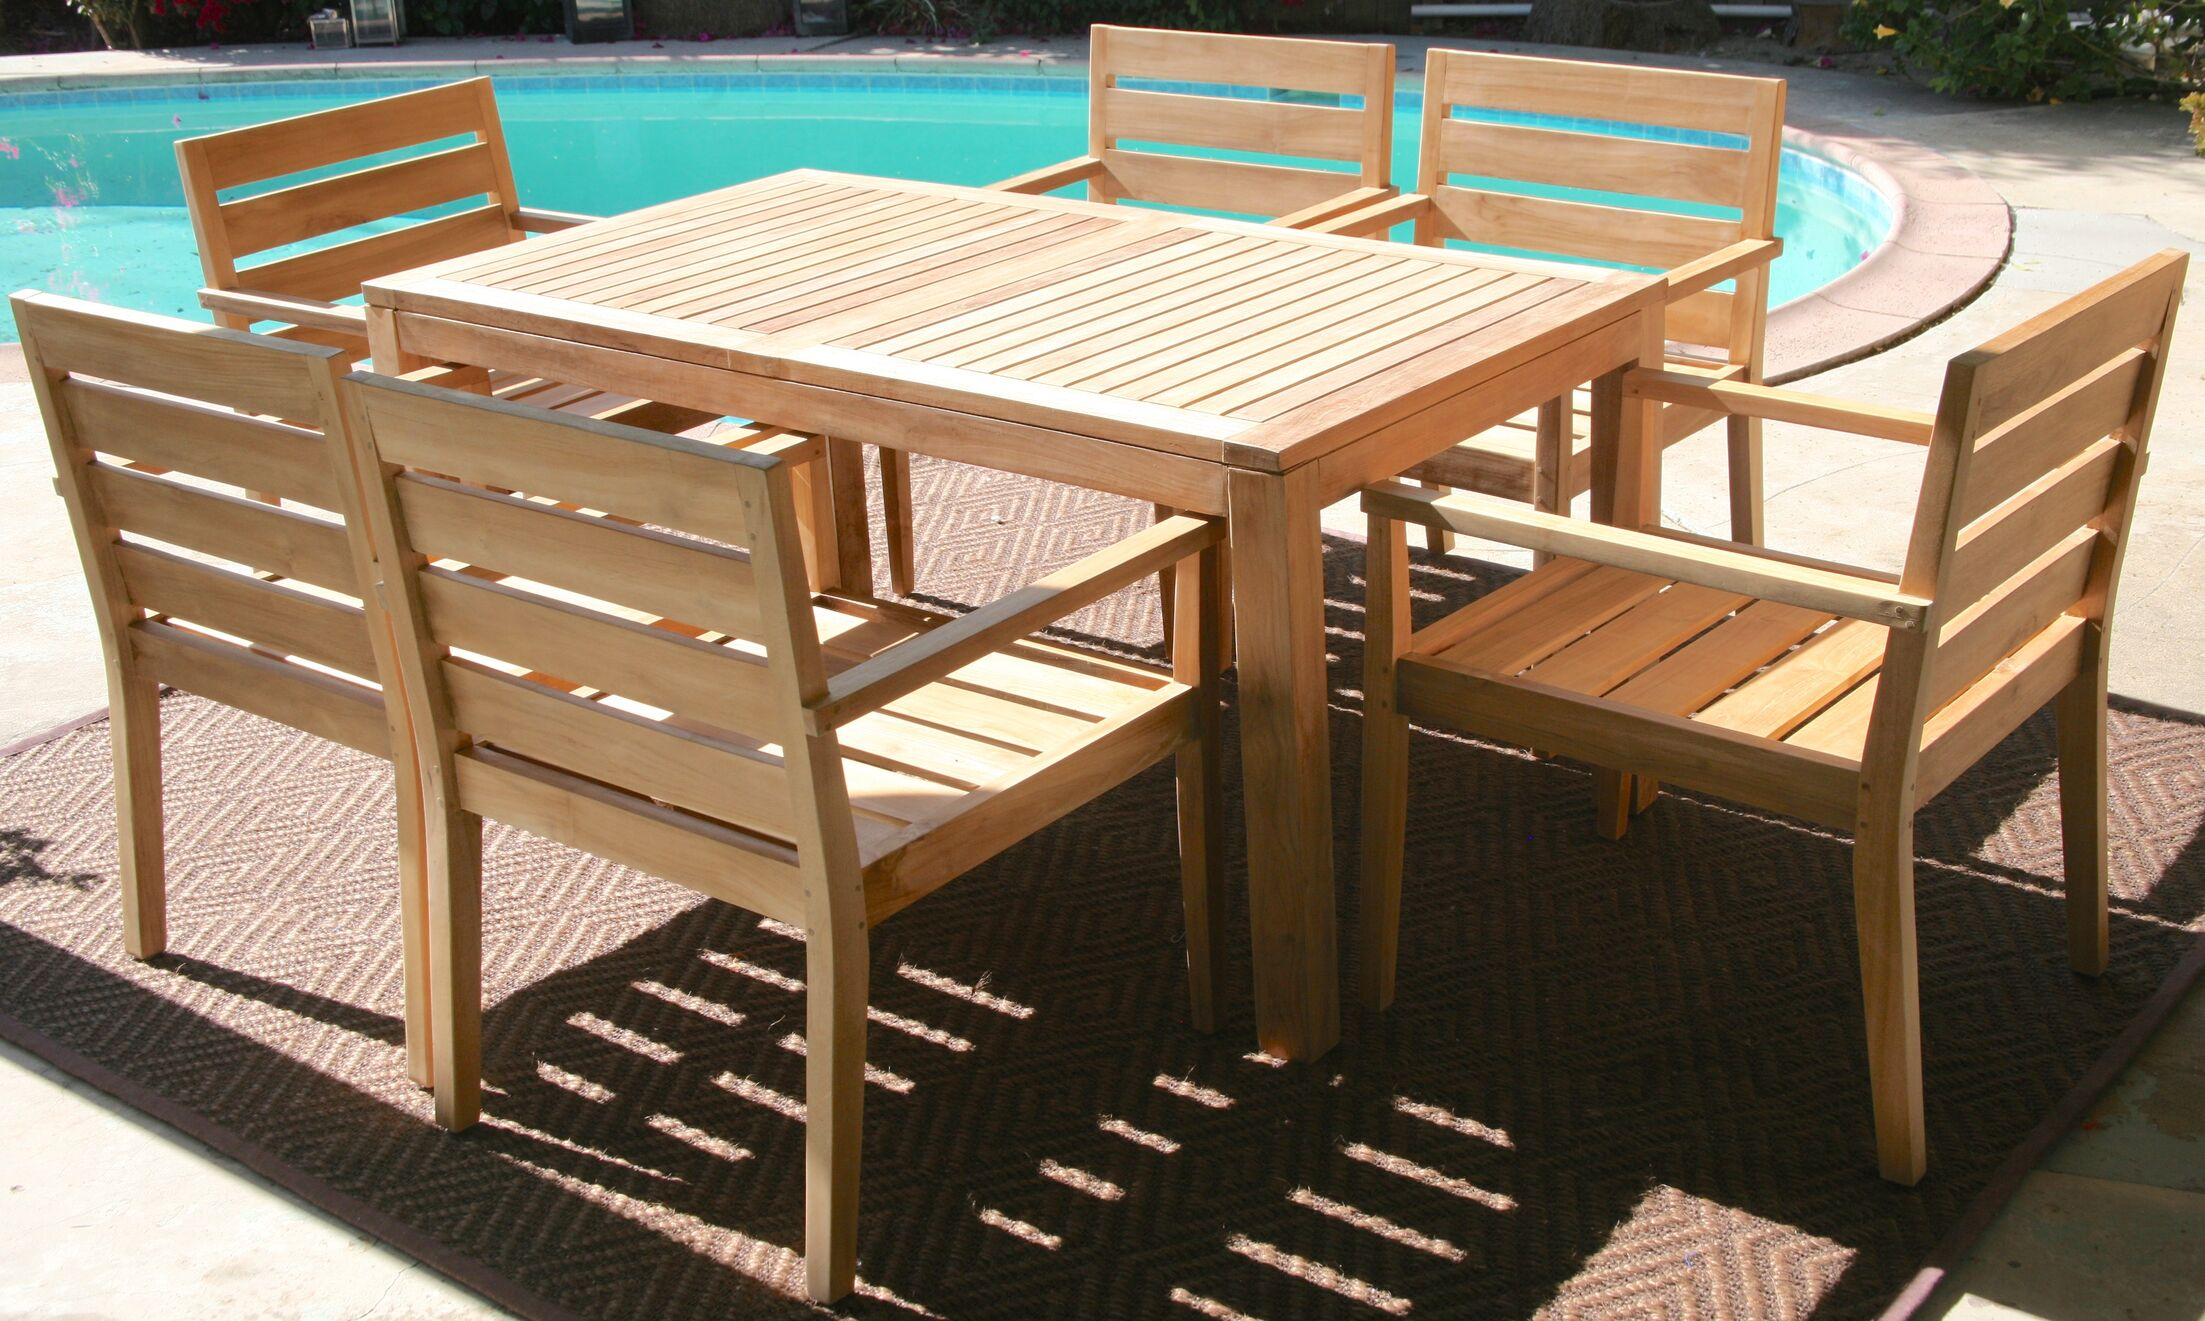 Waterford 7 Piece Teak Dining Set with Sunbrella Cushions Cushion Color: Cocoa